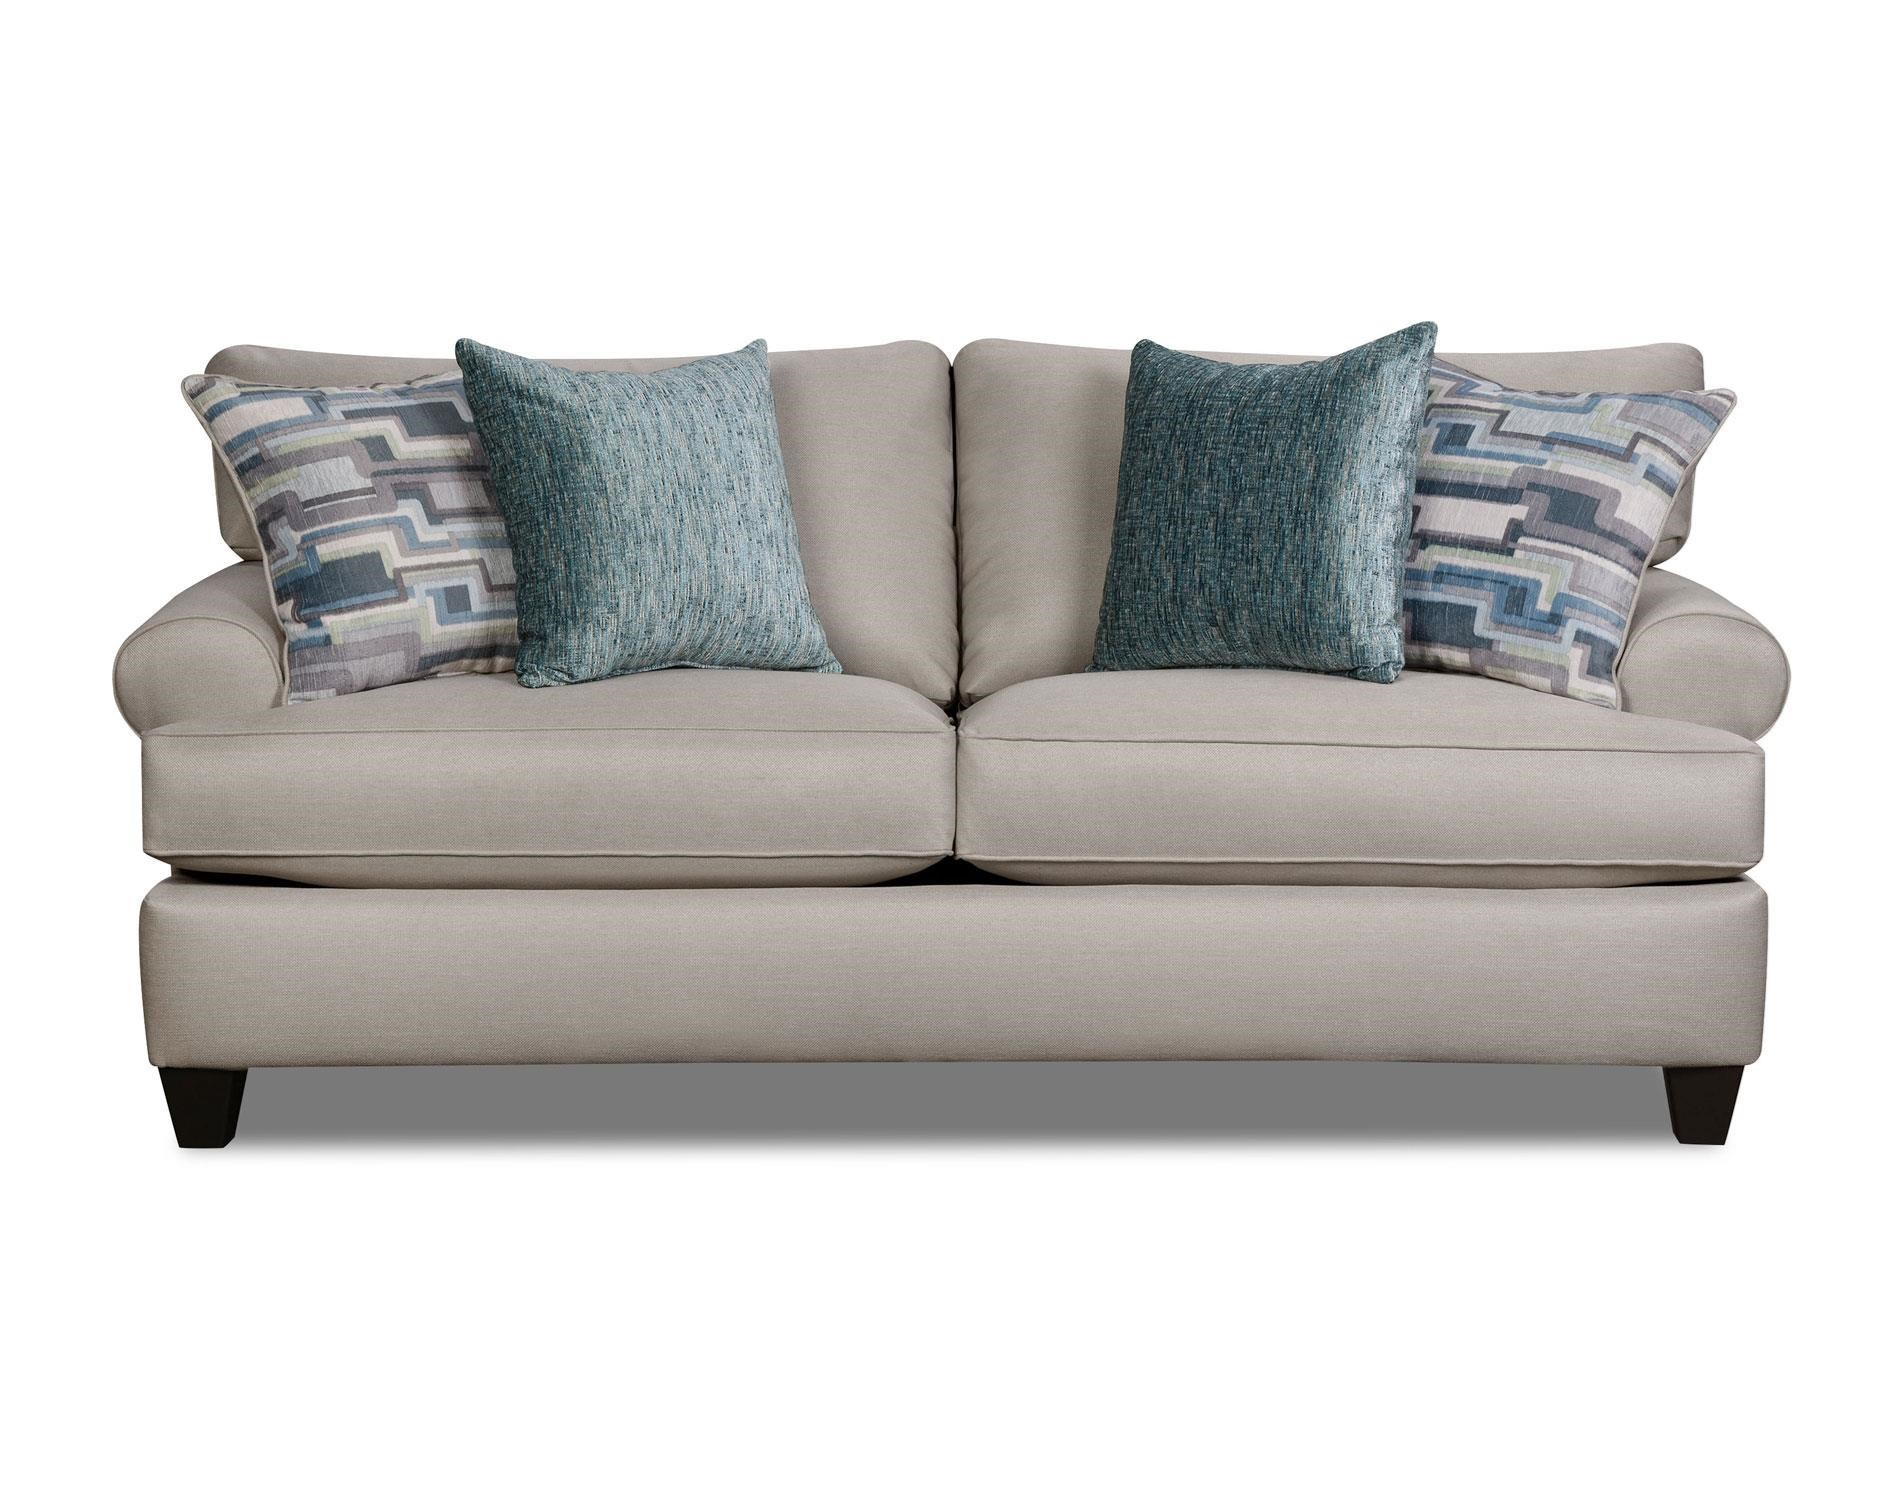 Corinthian Hogan Nickel Sofa - Item Number: 47G3